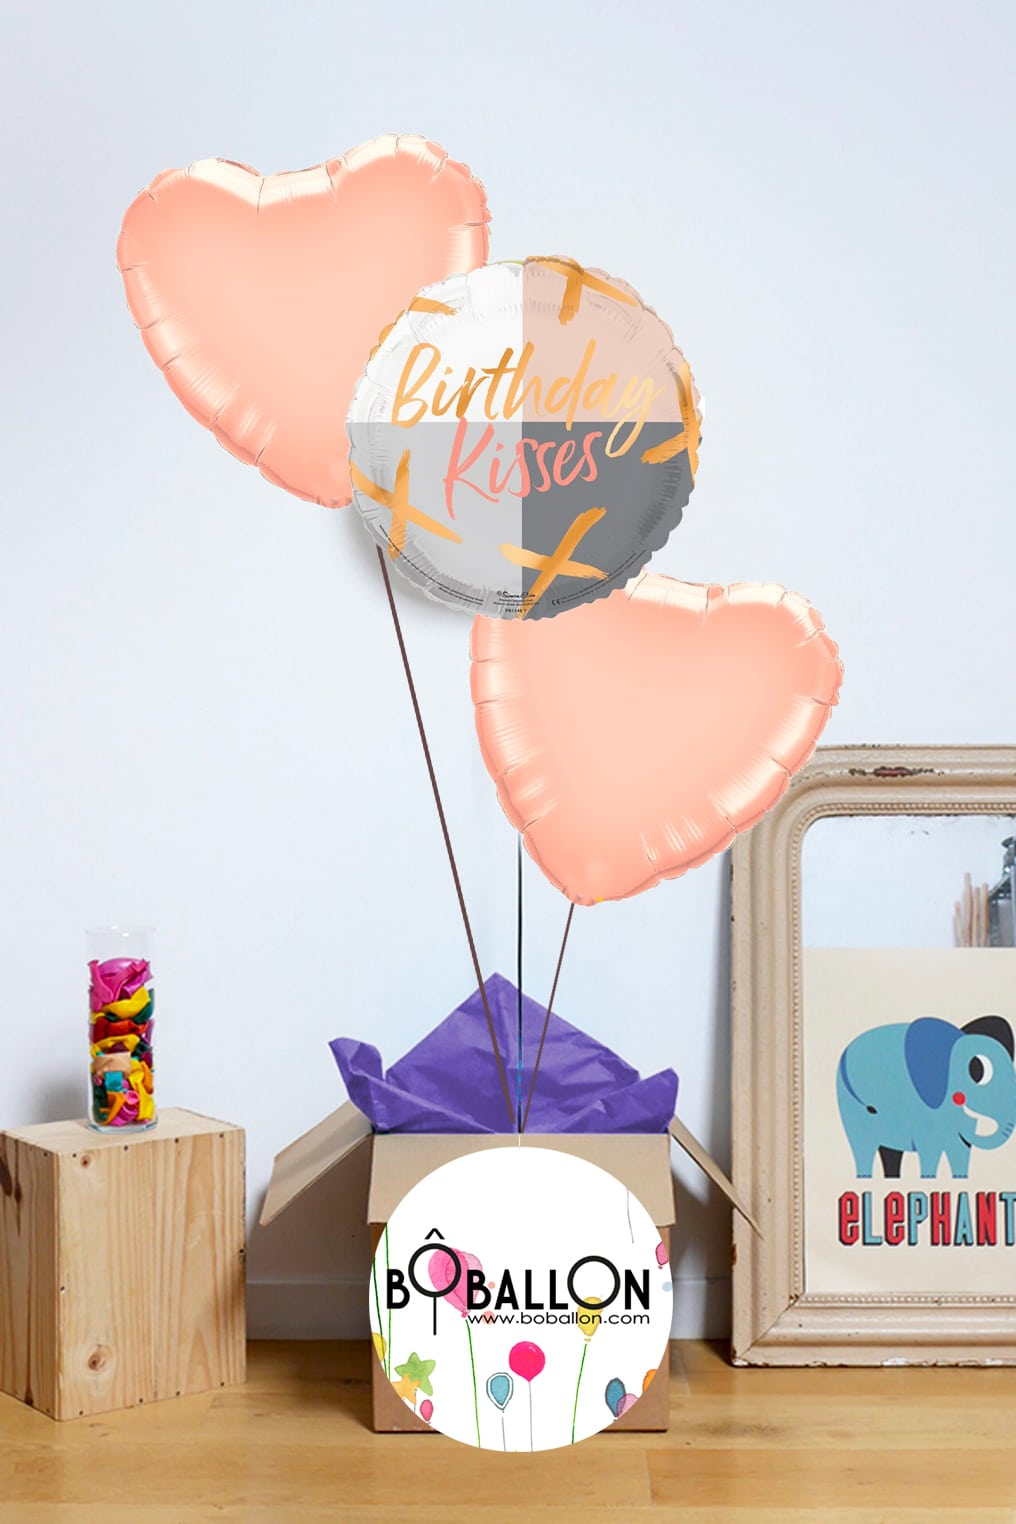 Bouquet ballons rose gold anniversaire